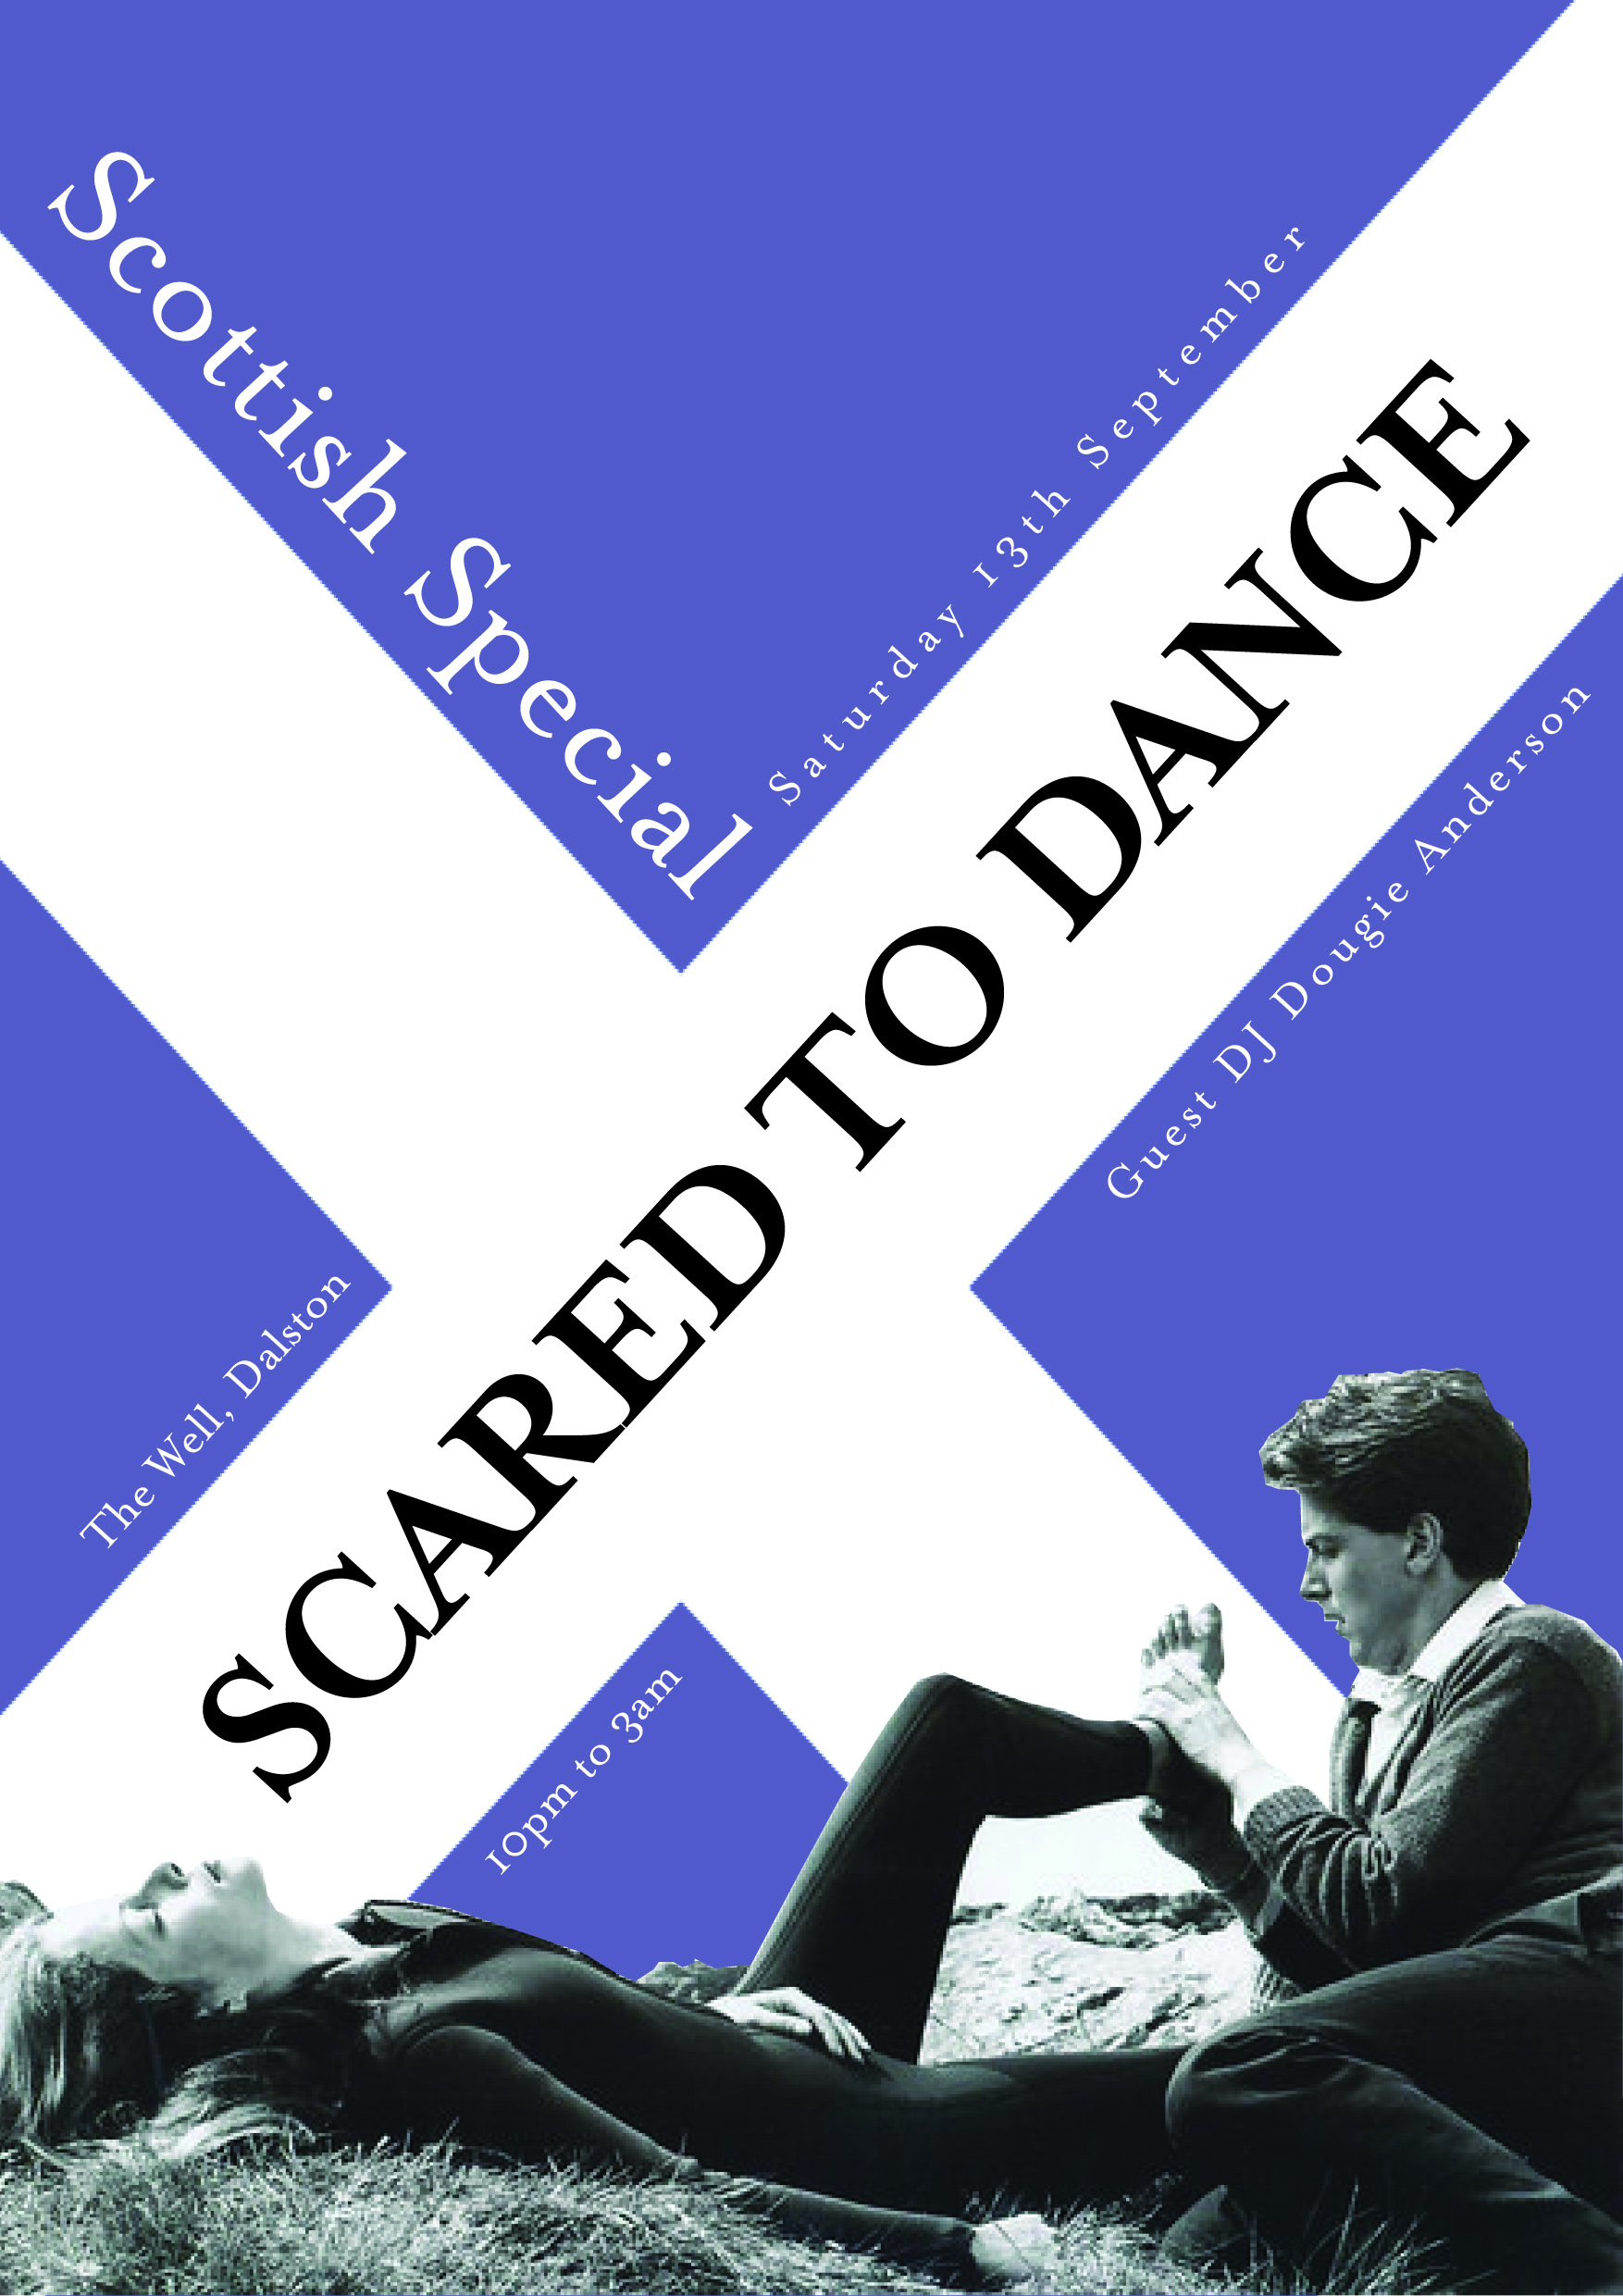 SCOTTISH SPECIAL ON SAT 13TH SEPT